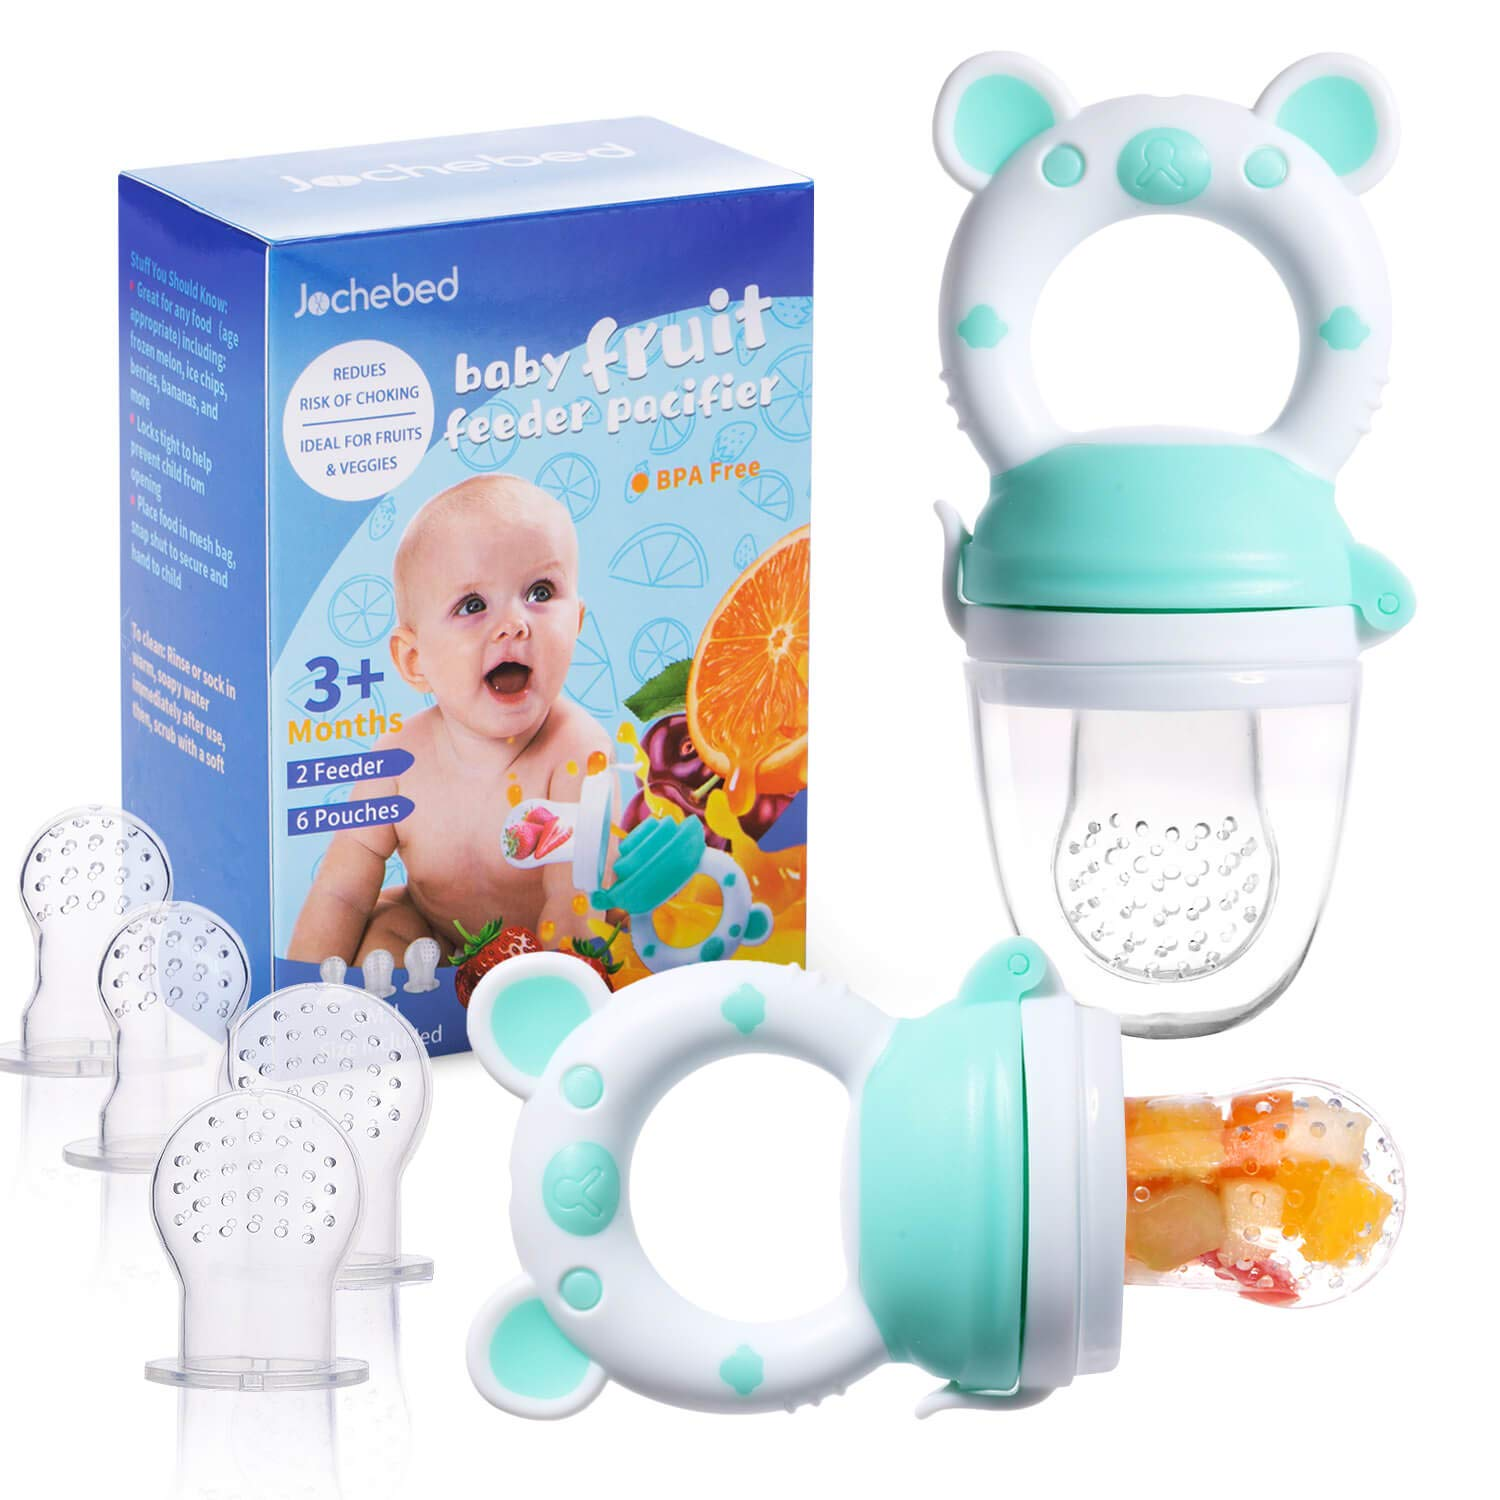 Baby Fruit Food Feeder Pacifier - Fresh Food Feeder, Infant Fruit Teething Teether Toy for 3-24 Months, 6 Pcs Silicone Pouches for Toddlers & Kids & Babies, 2-Packs (Cyan)